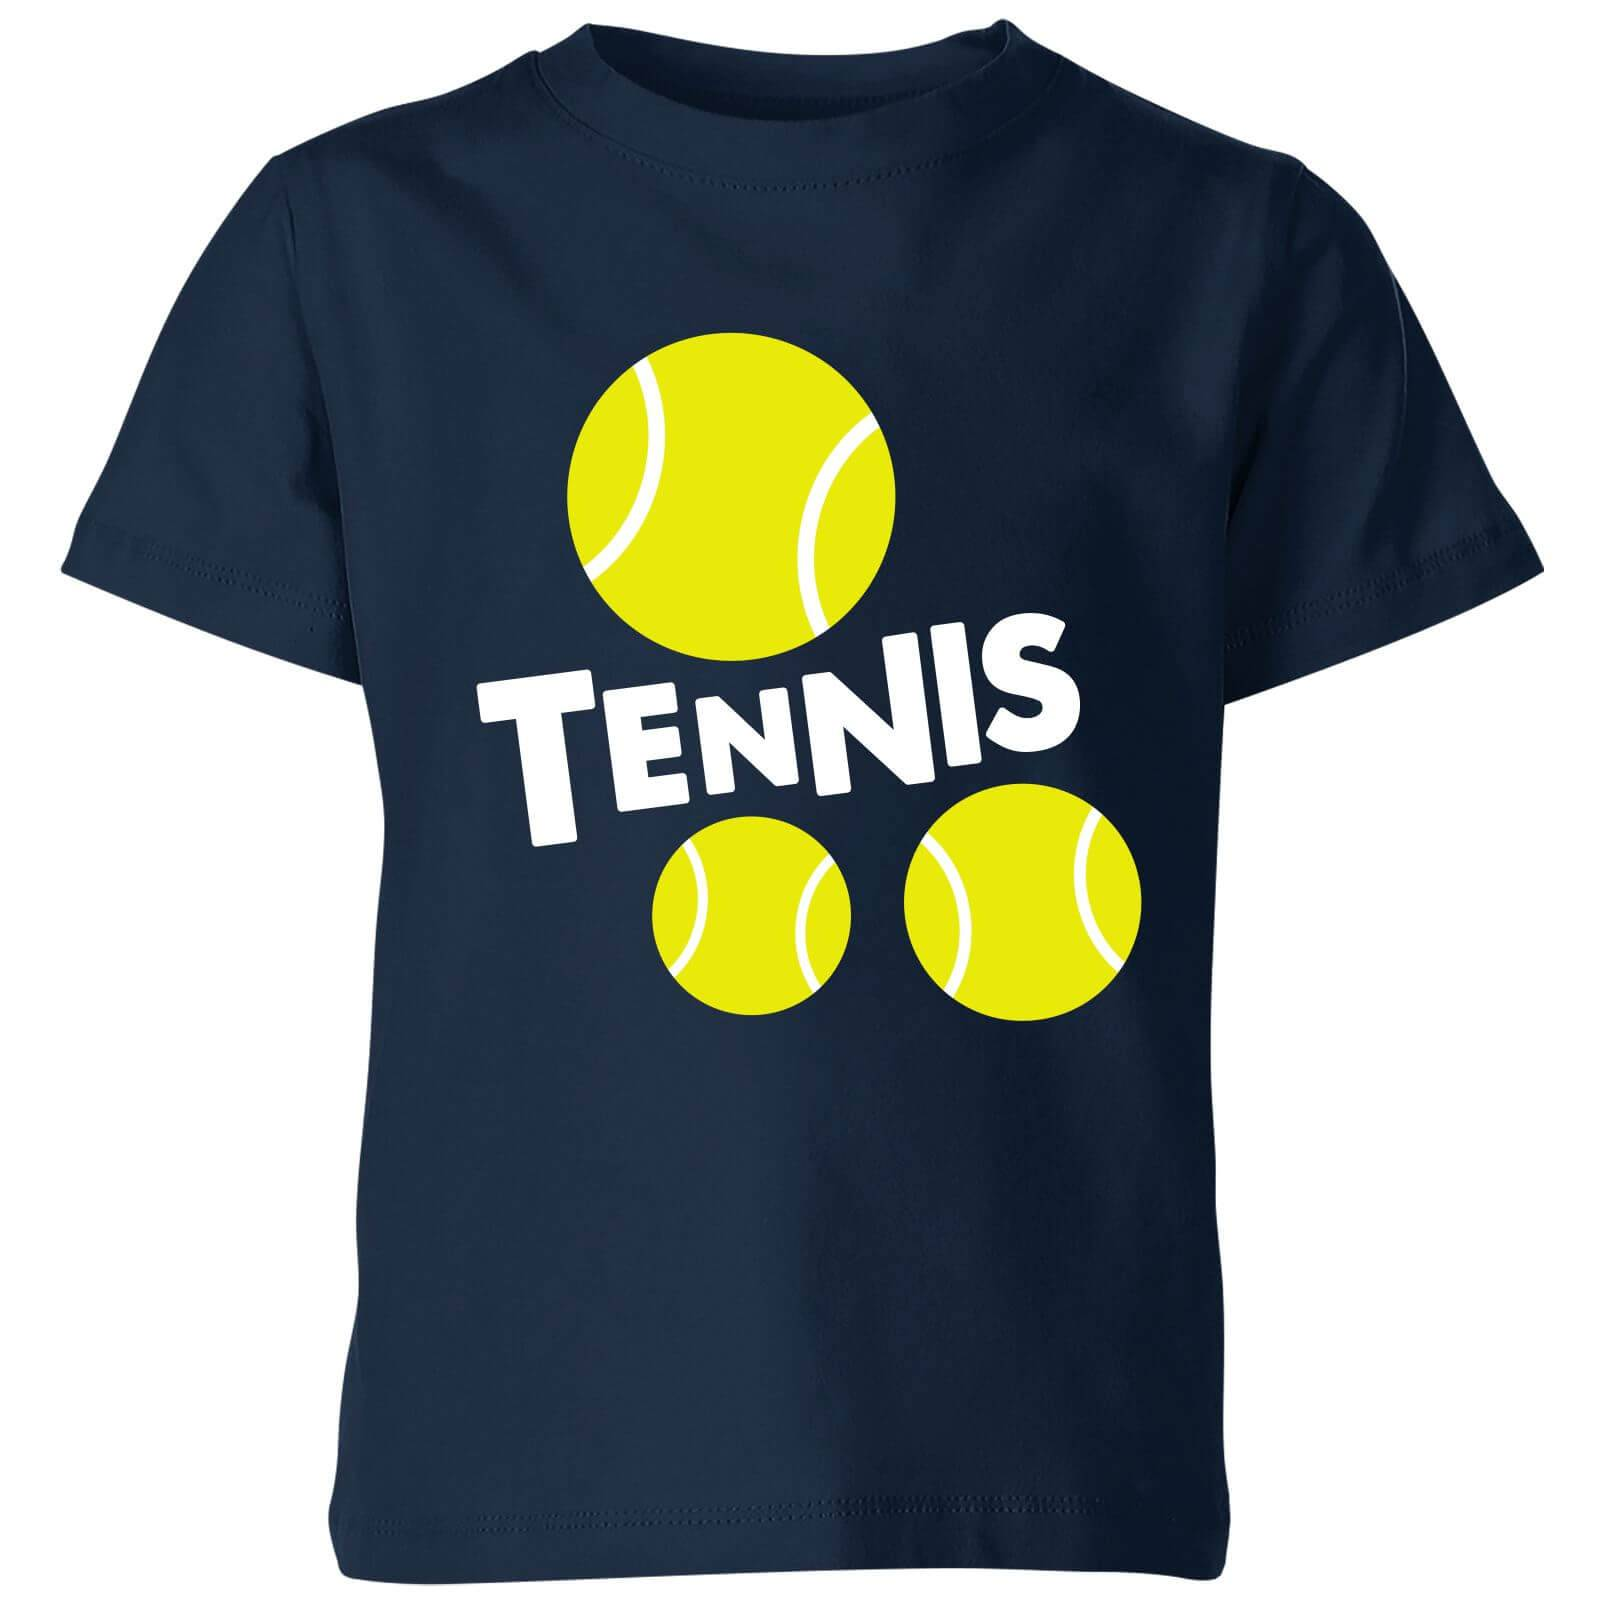 The Tennis Collection Tennis Balls Kids' T-Shirt - Navy - 7-8 Years - Navy